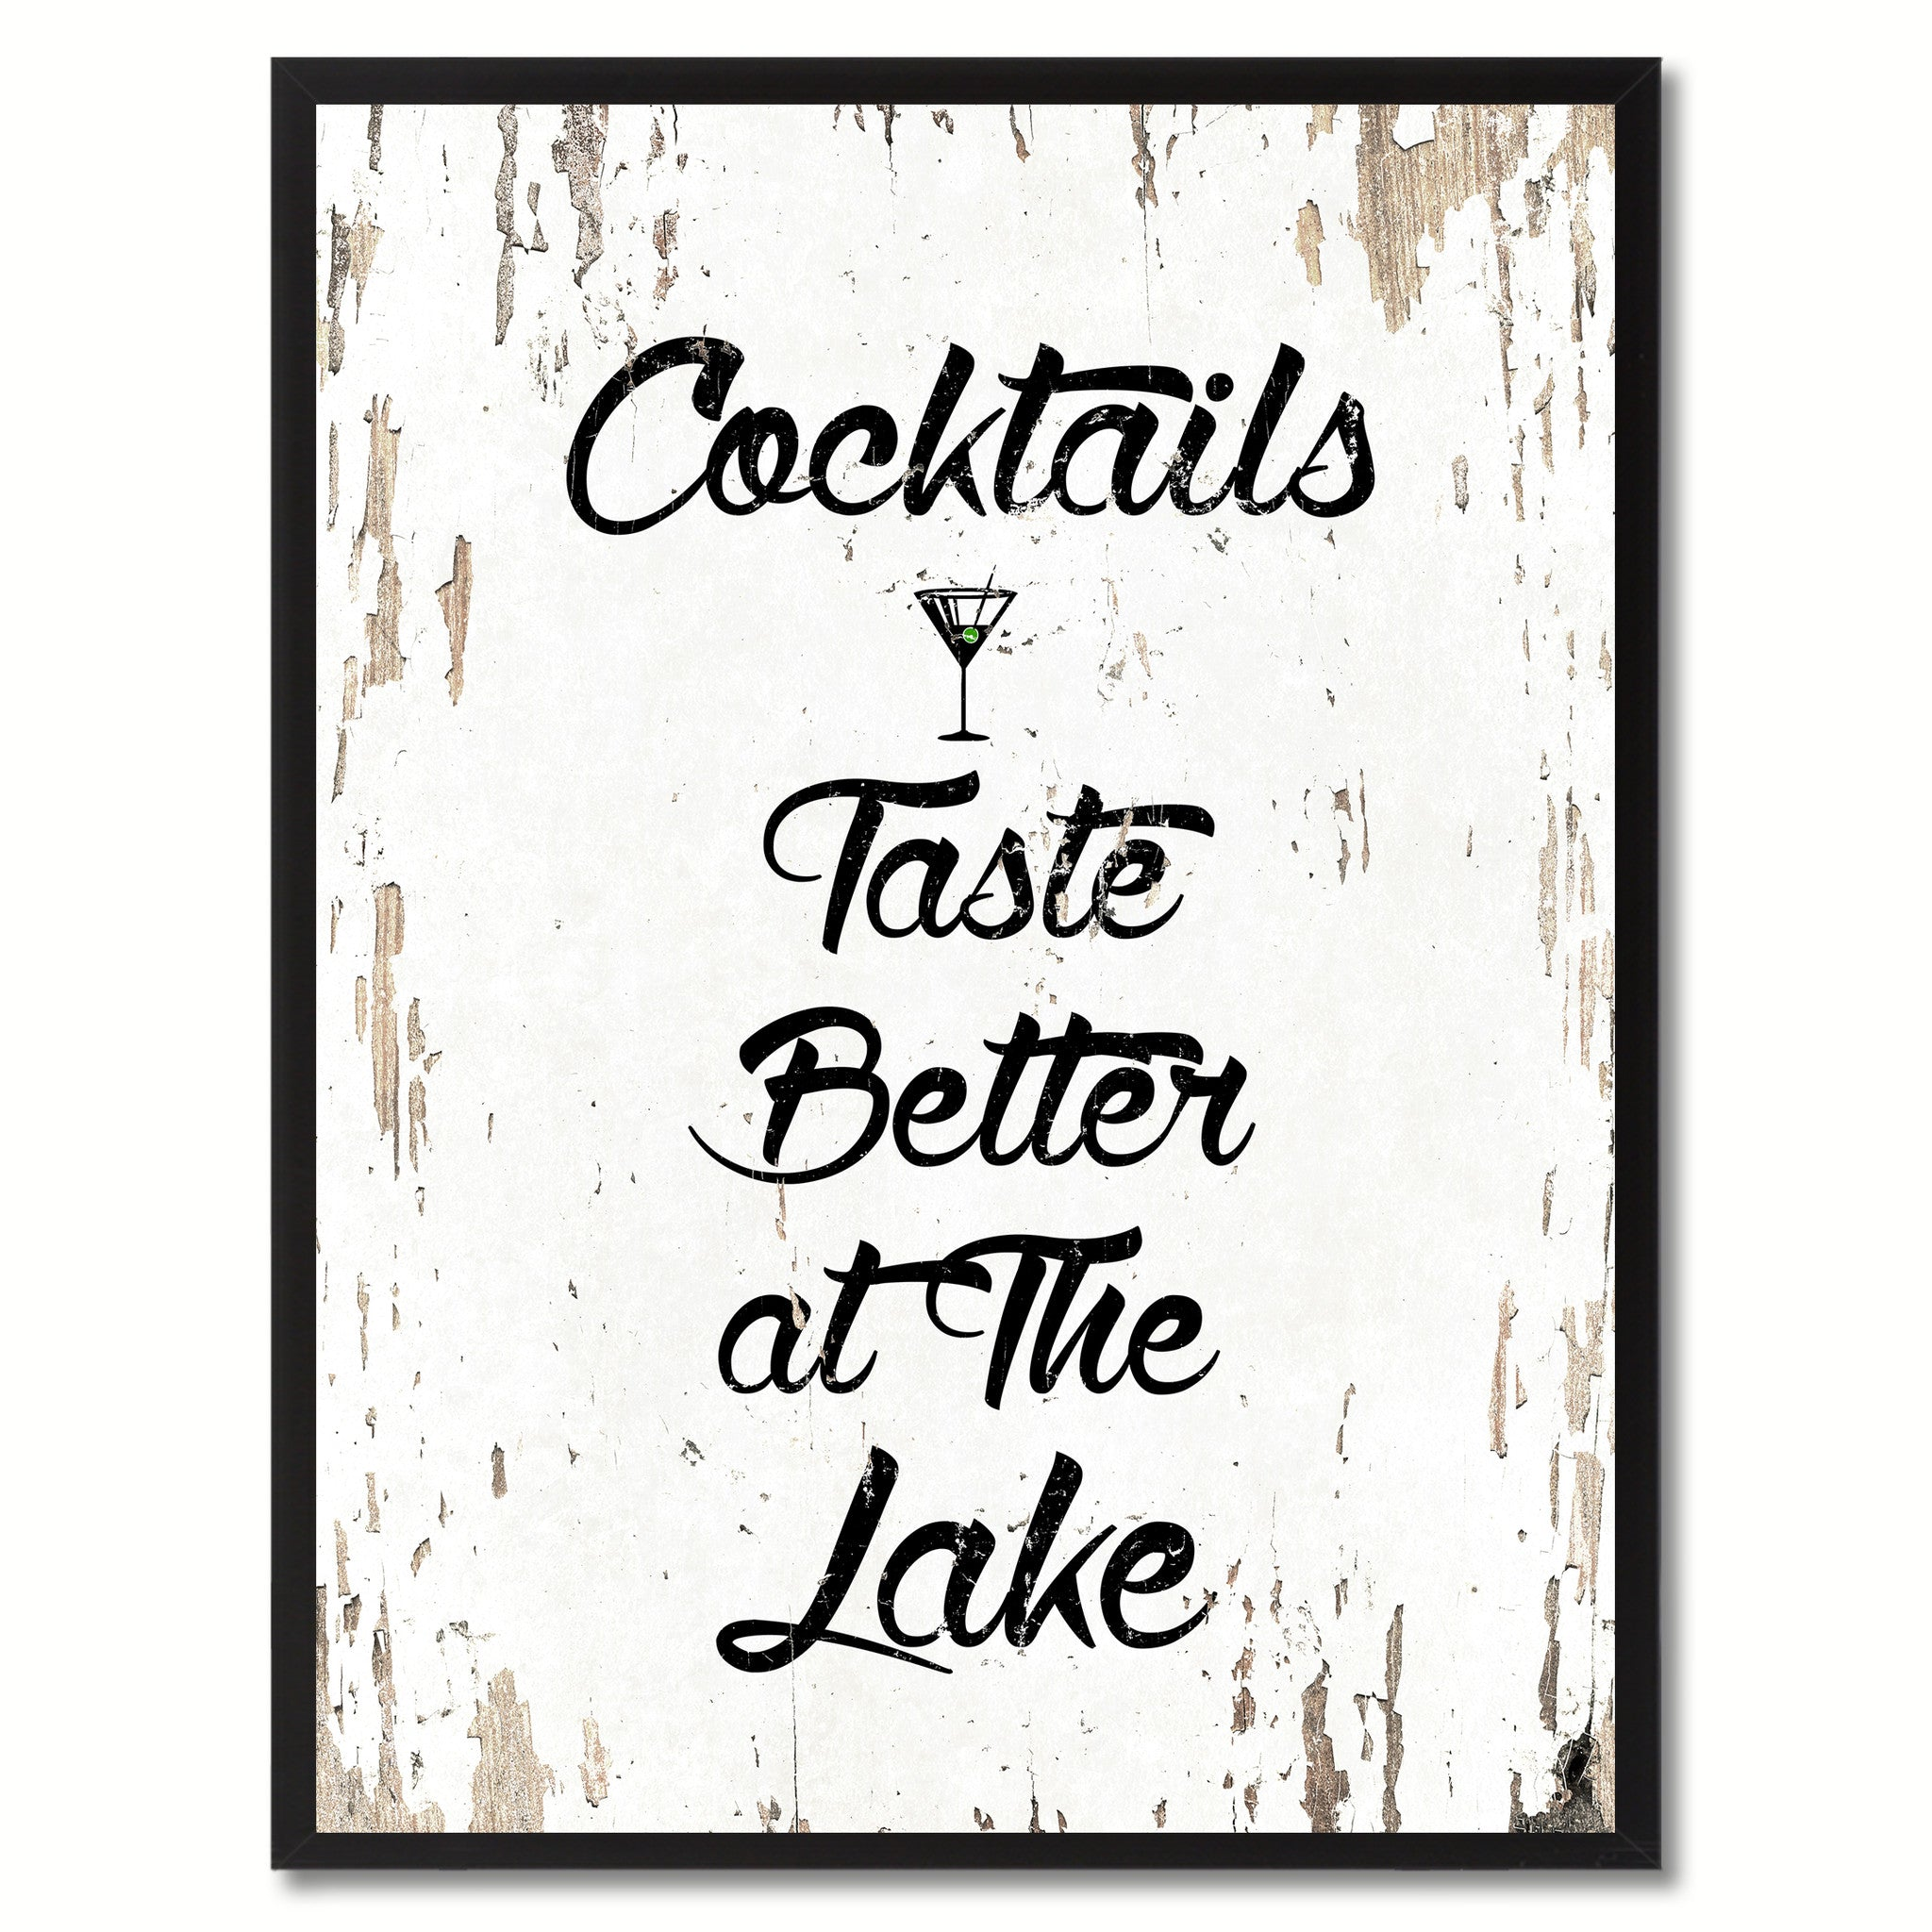 Cocktails Taste Better At The Lake Saying Canvas Print, Black Picture Frame Home Decor Wall Art Gifts